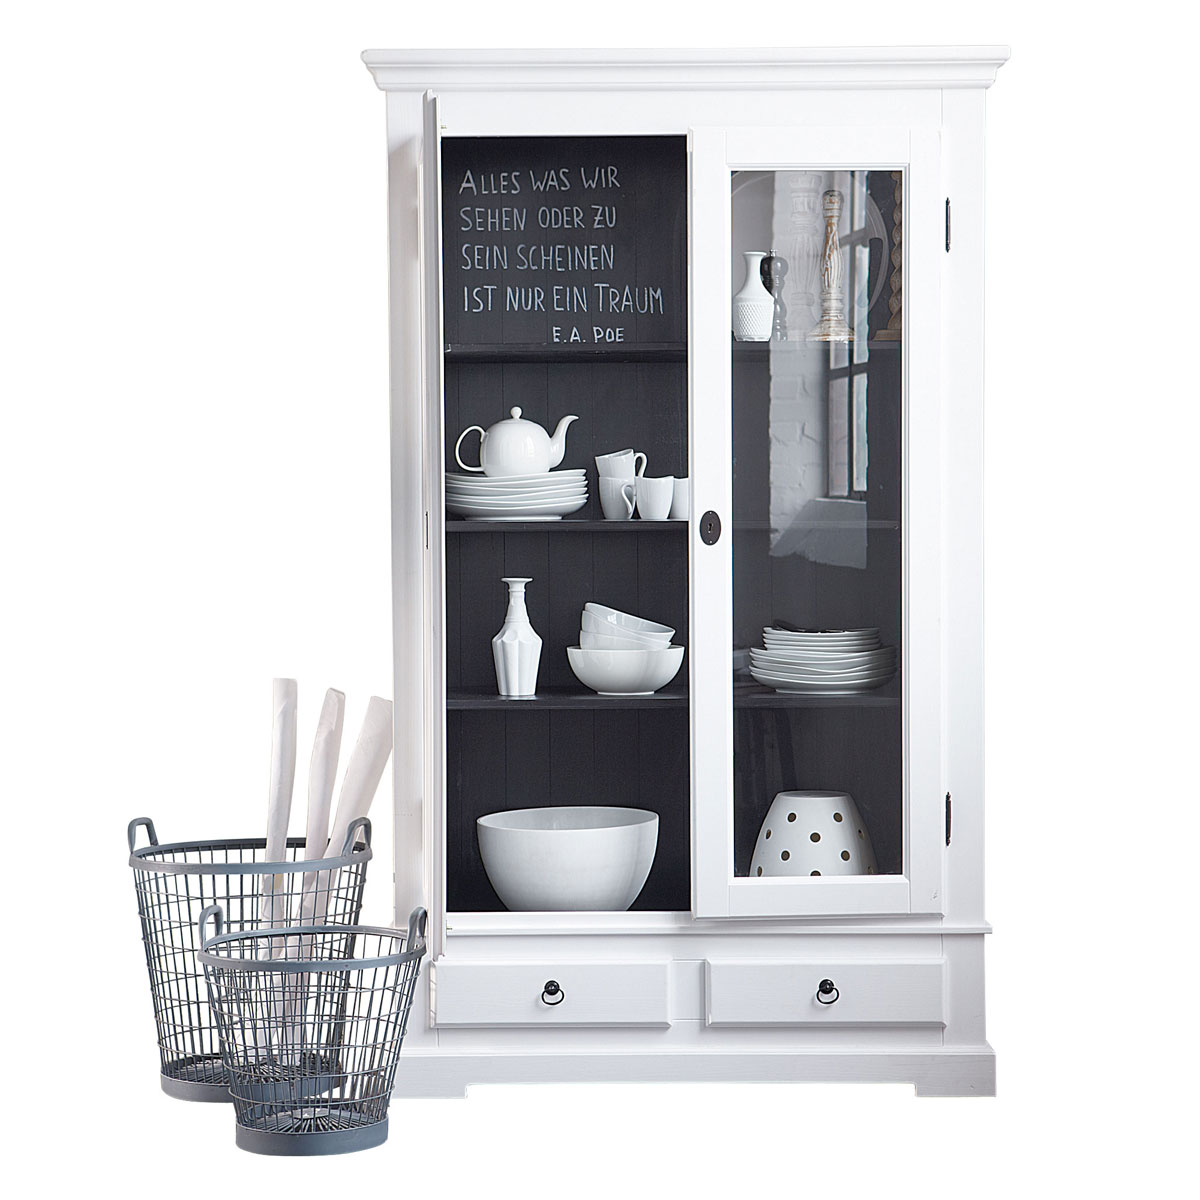 landhaus vitrine wei innen mit tafel von impressionen neu 995 ebay. Black Bedroom Furniture Sets. Home Design Ideas